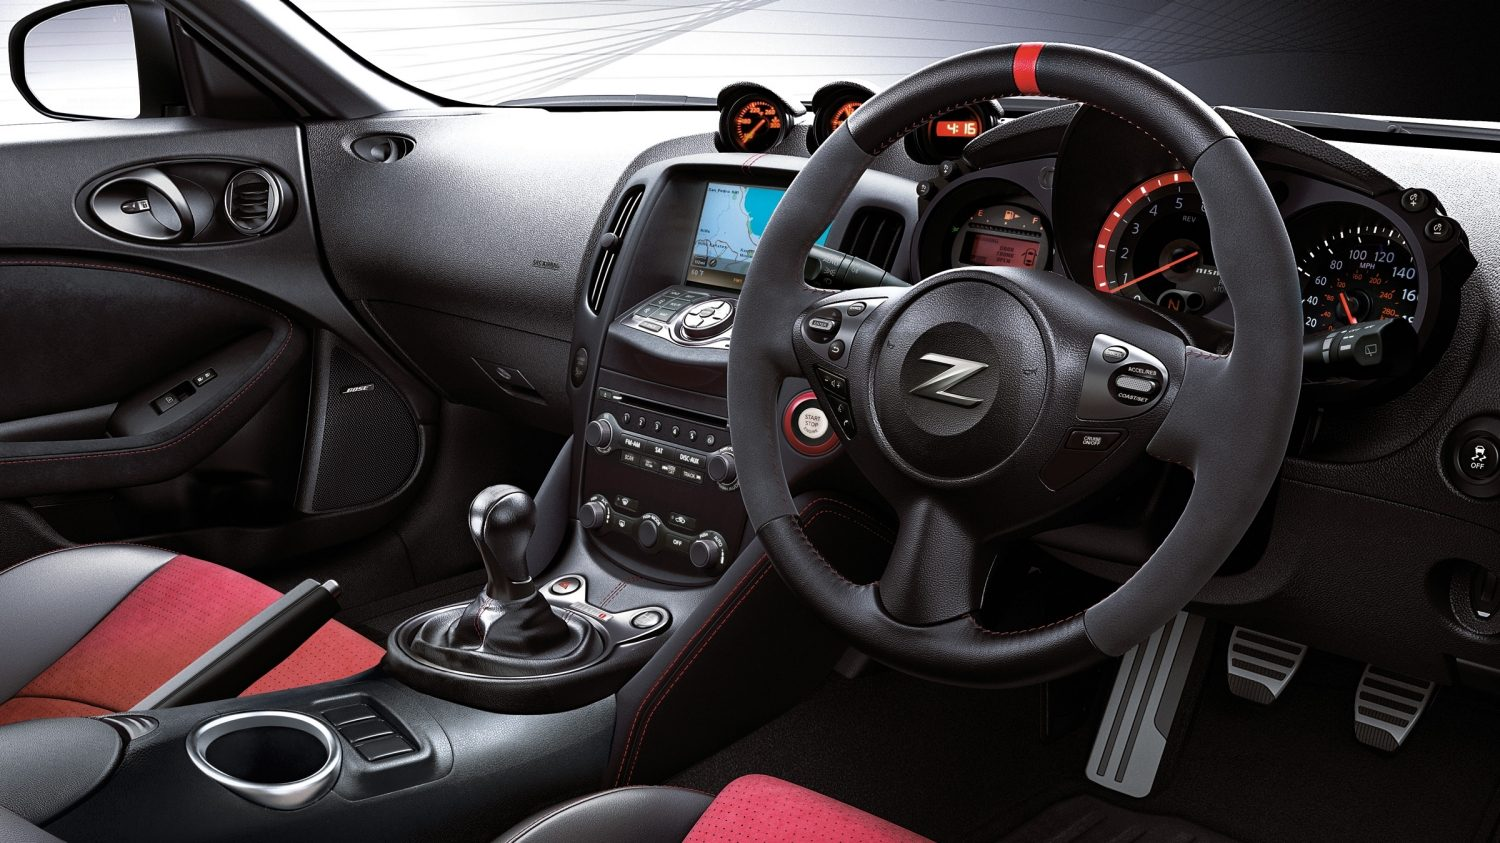 NISMO | Nissan 370Z | Sports car interior